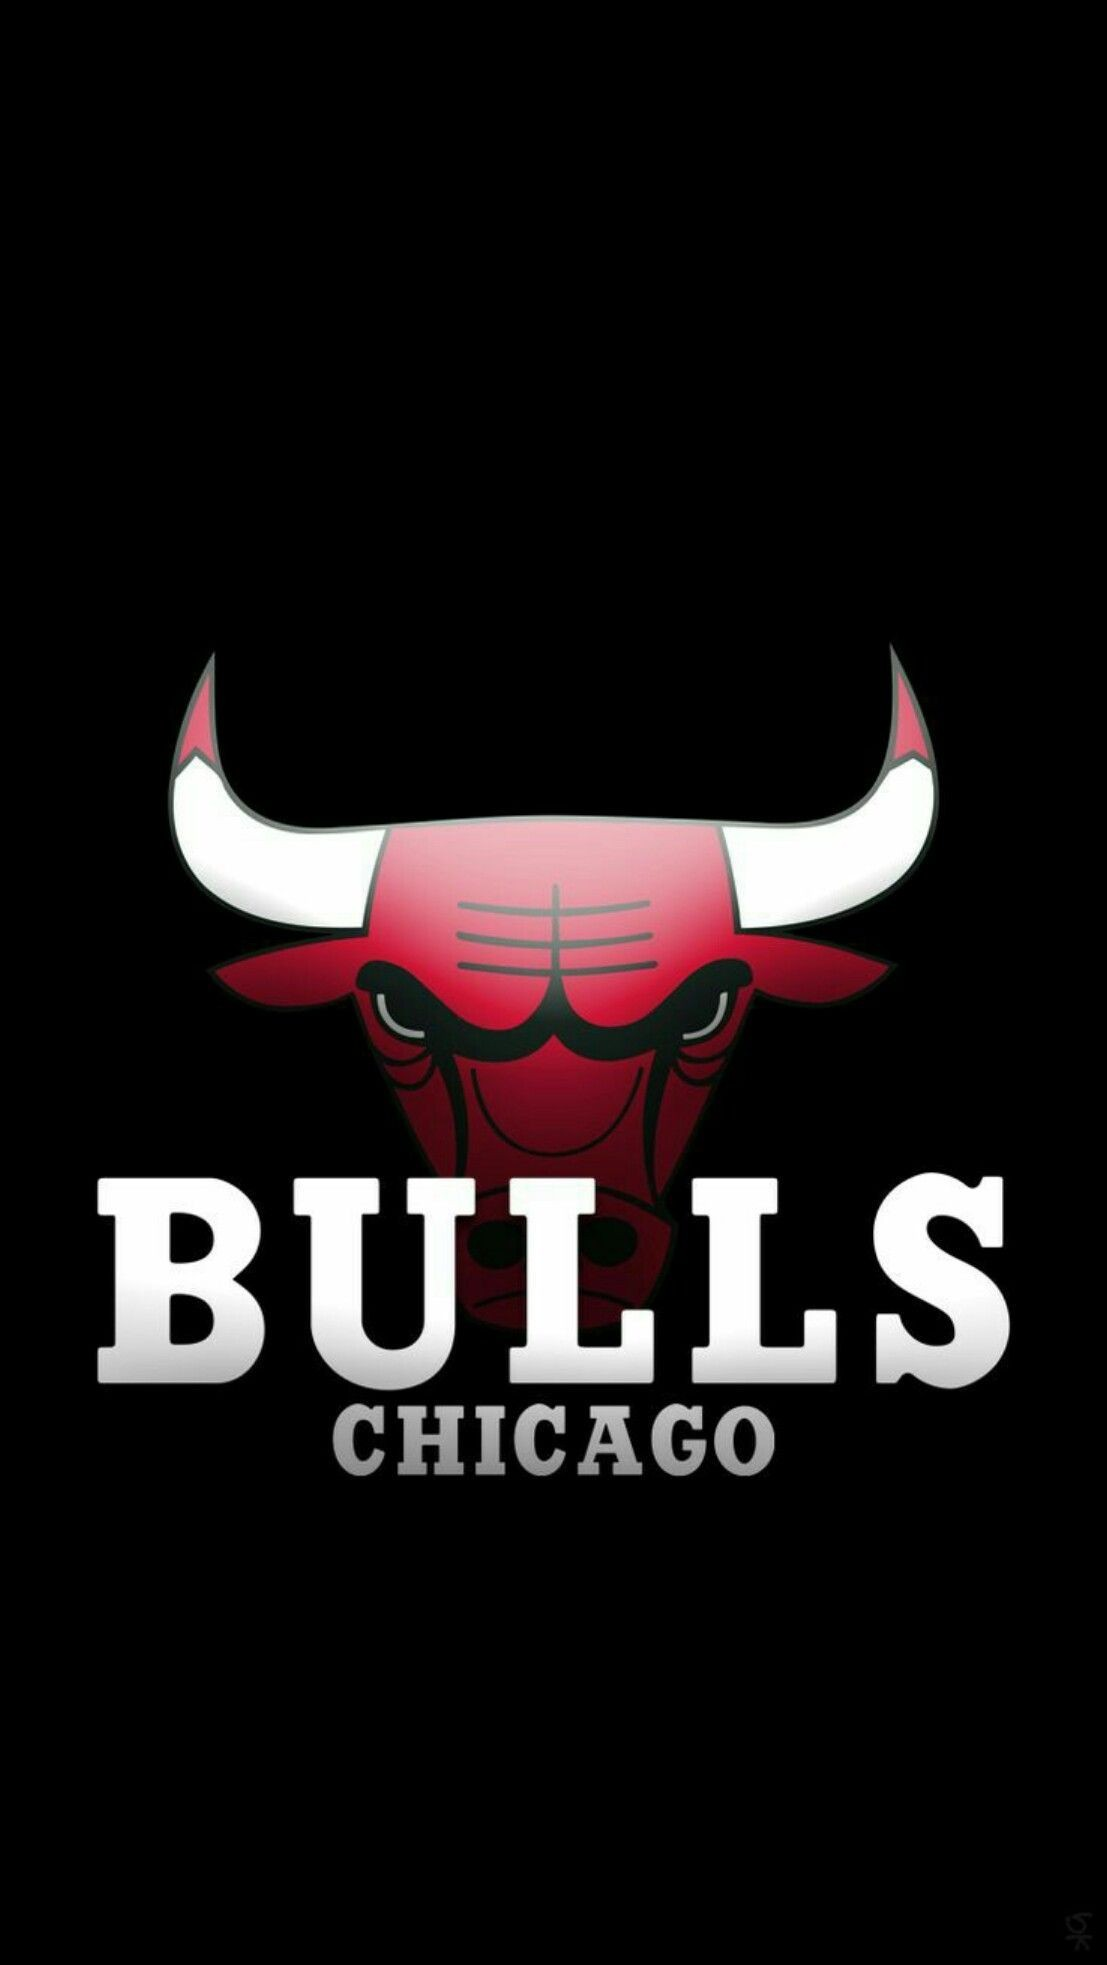 Chicago bulls wallpapers hd 81 background pictures 2048x1269 chicago bulls wallpapers hd wallpaper thecheapjerseys Gallery